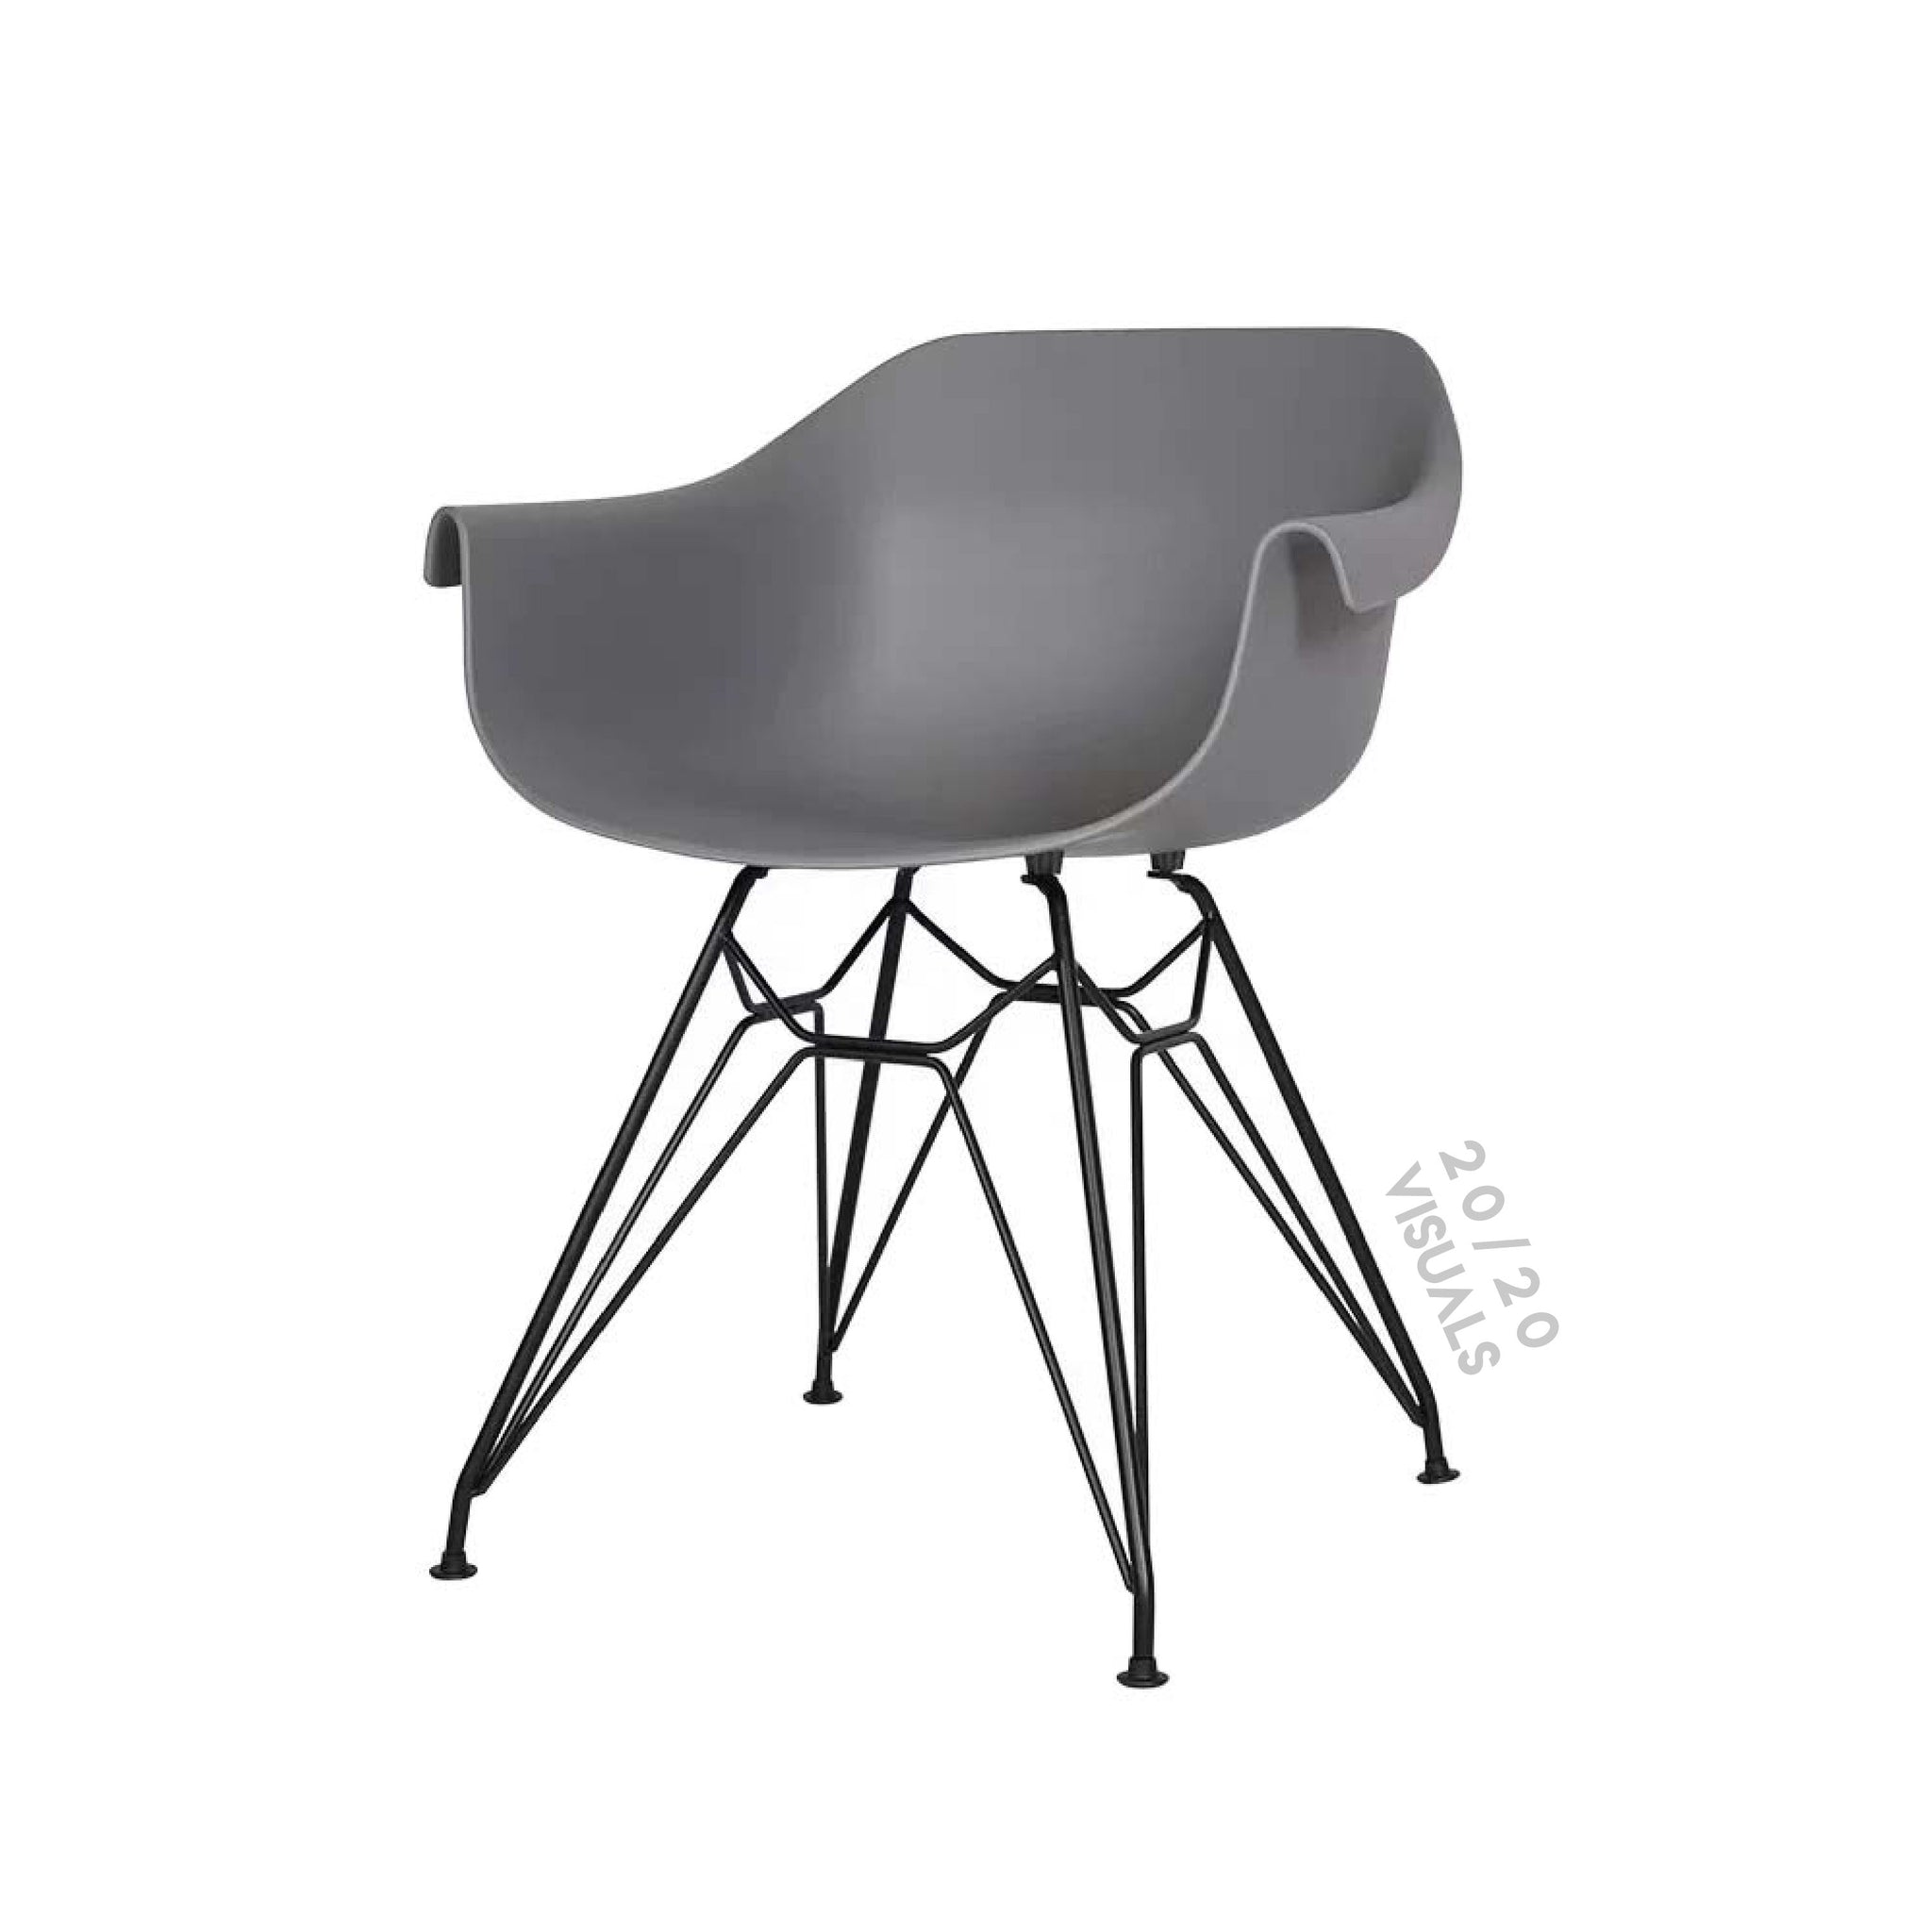 Steel Accent Bucket Chair